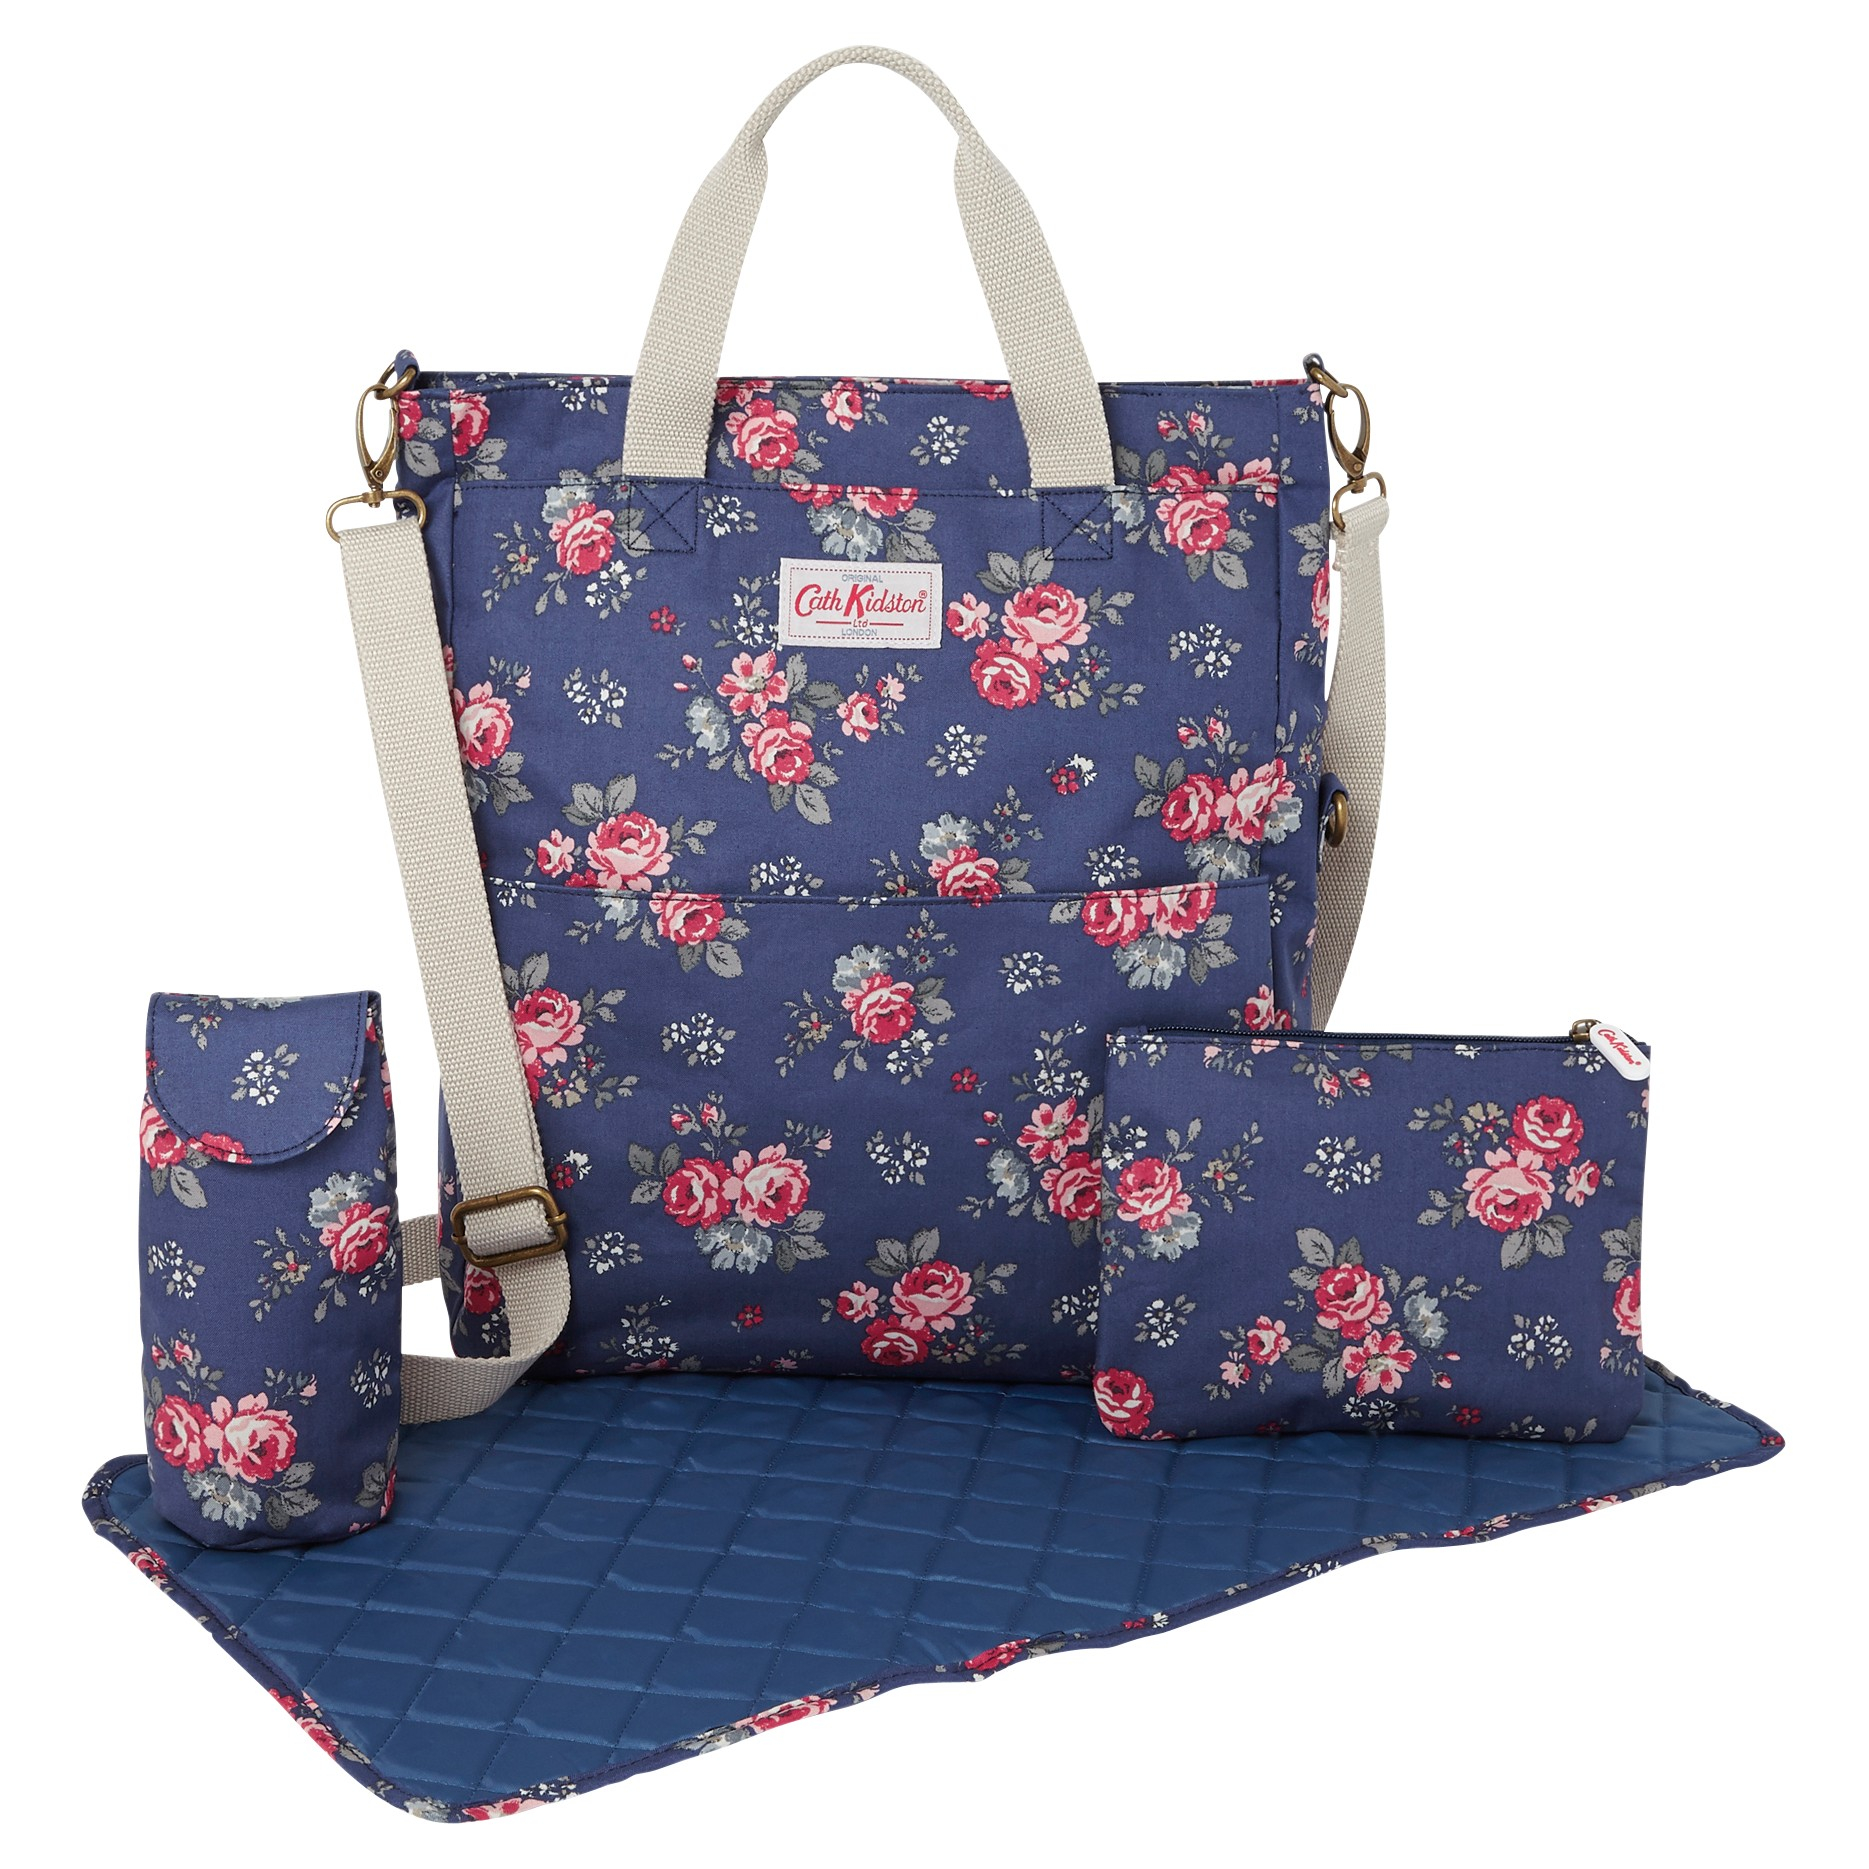 92dc39f9fc9b Cath Kidston Rose Foldover Changing Bag Accessories in .